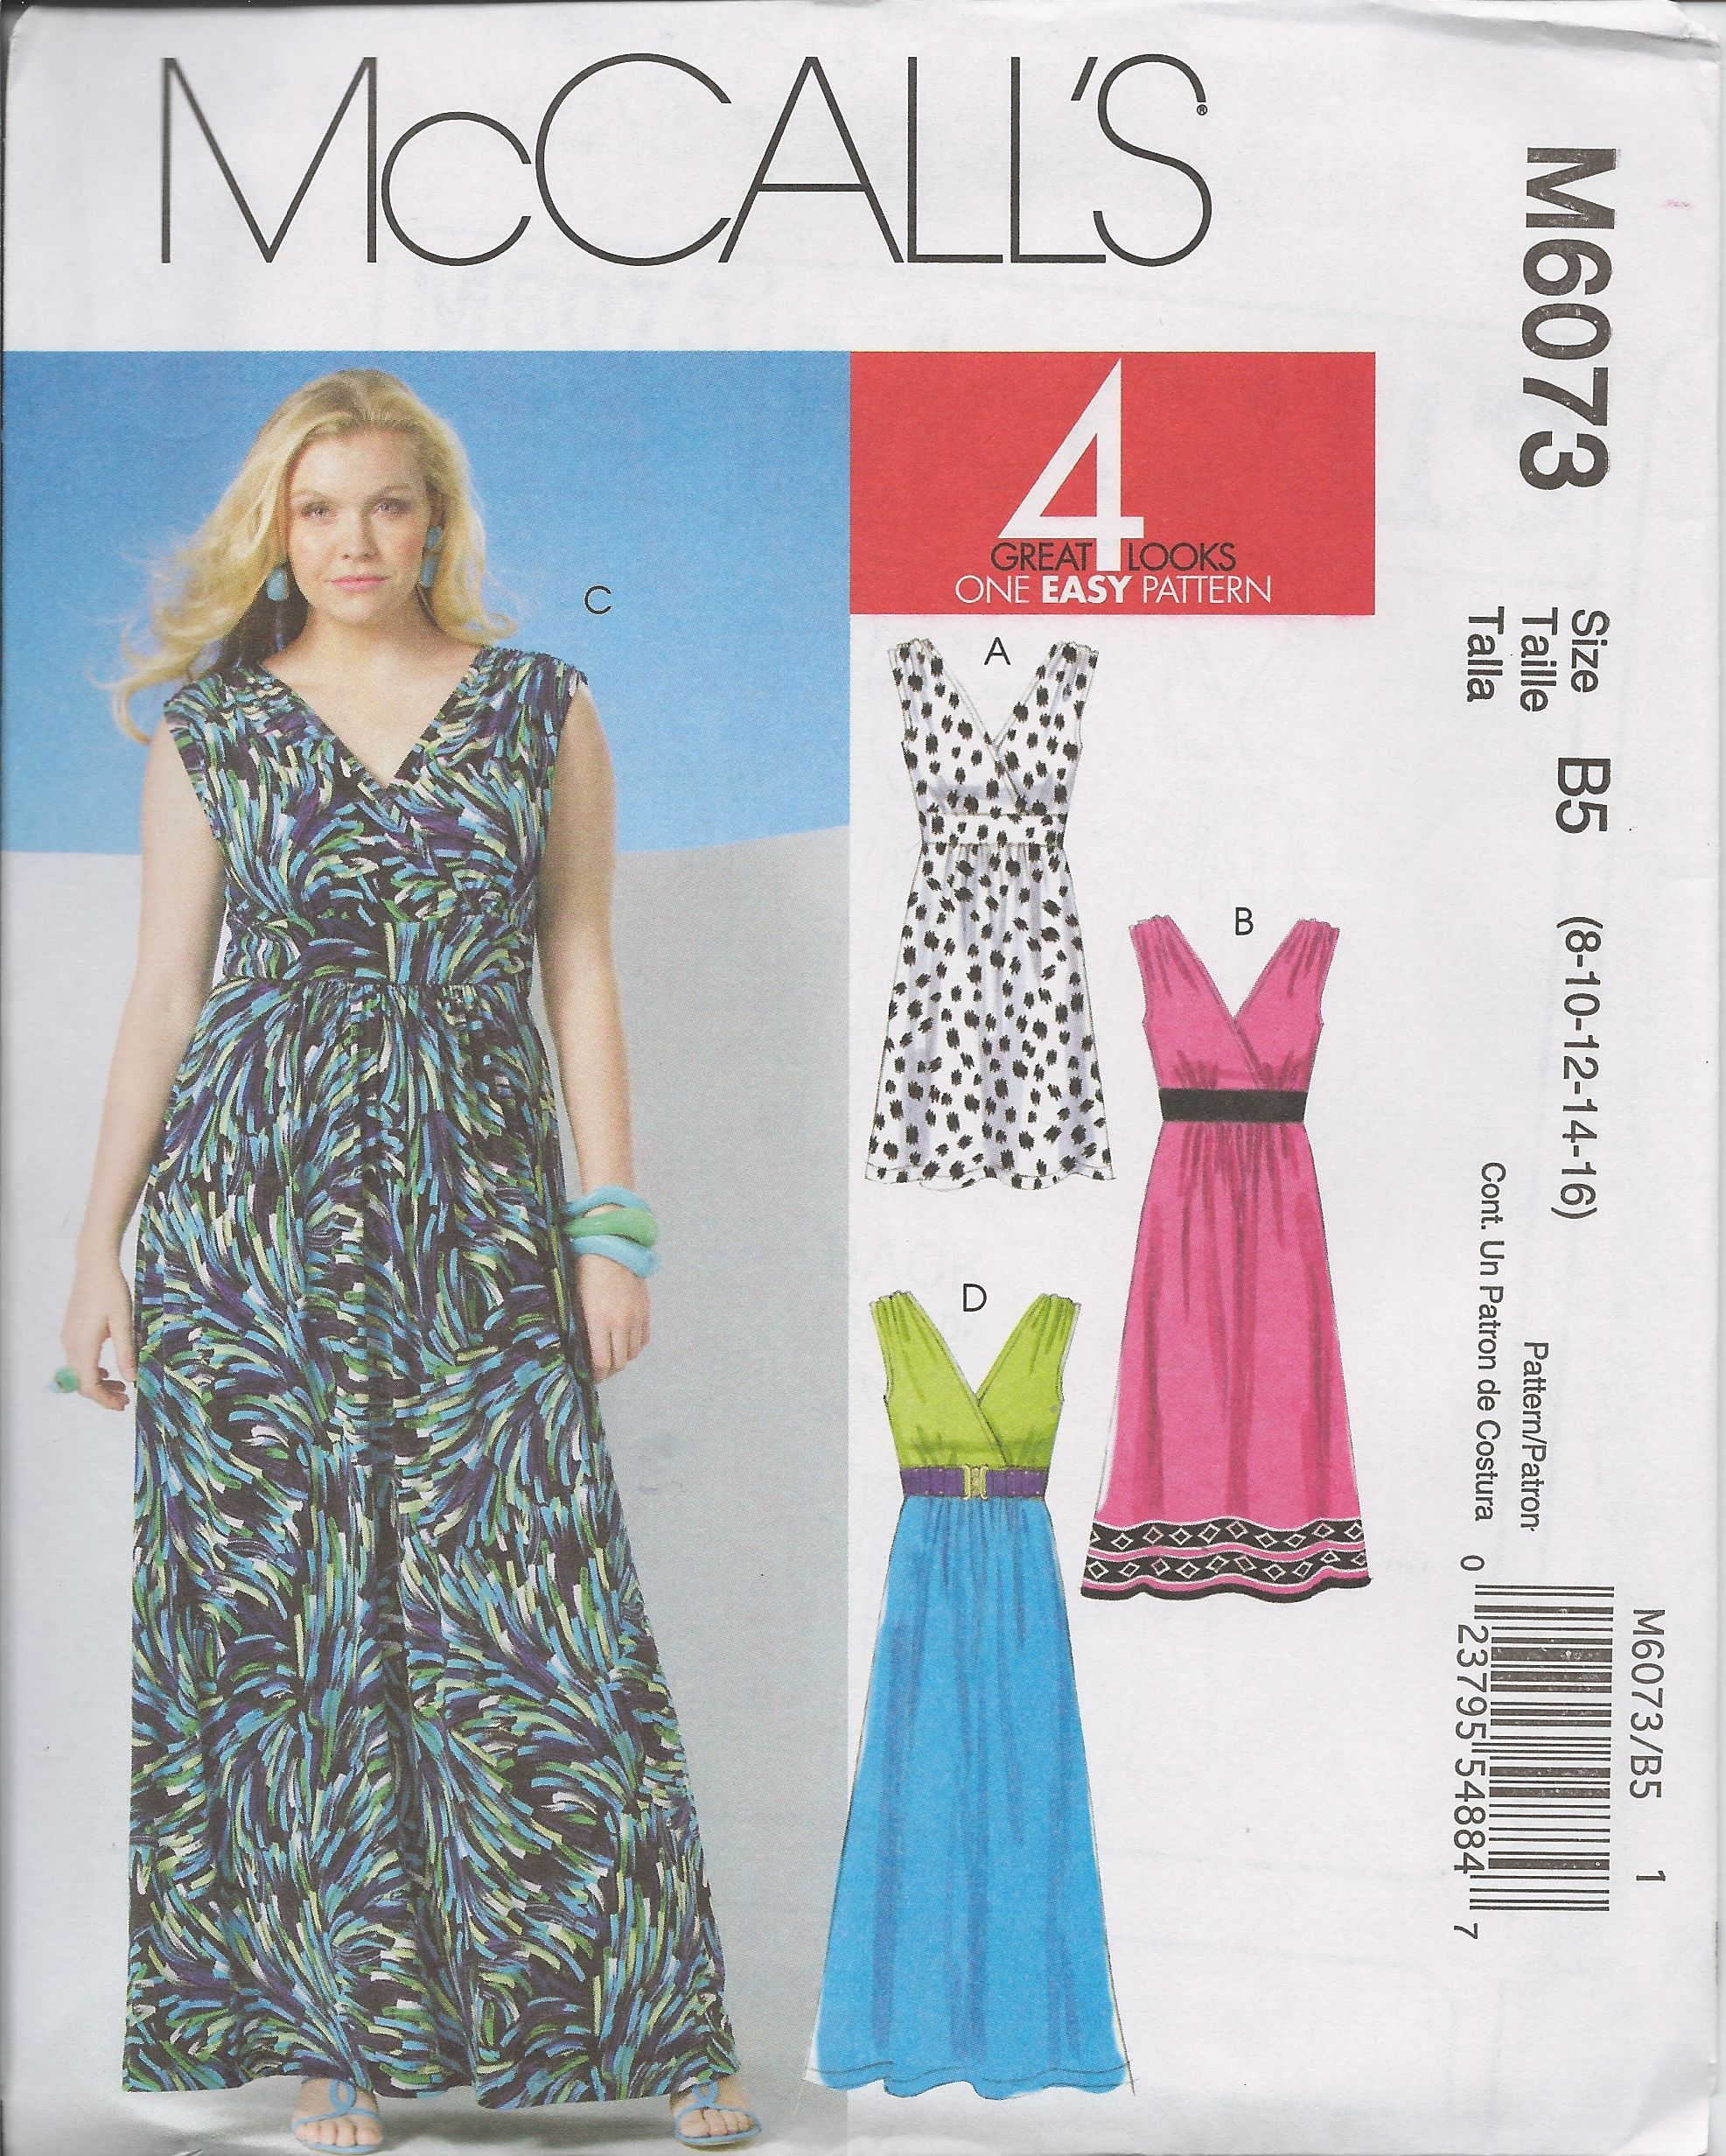 Mccalls 6073 2010 sizes 8 10 12 14 16 pattern library 2010s womens pullover sleeveless dress sewing pattern midi maxi or above knee length misses plus size uncut mccalls jeuxipadfo Choice Image